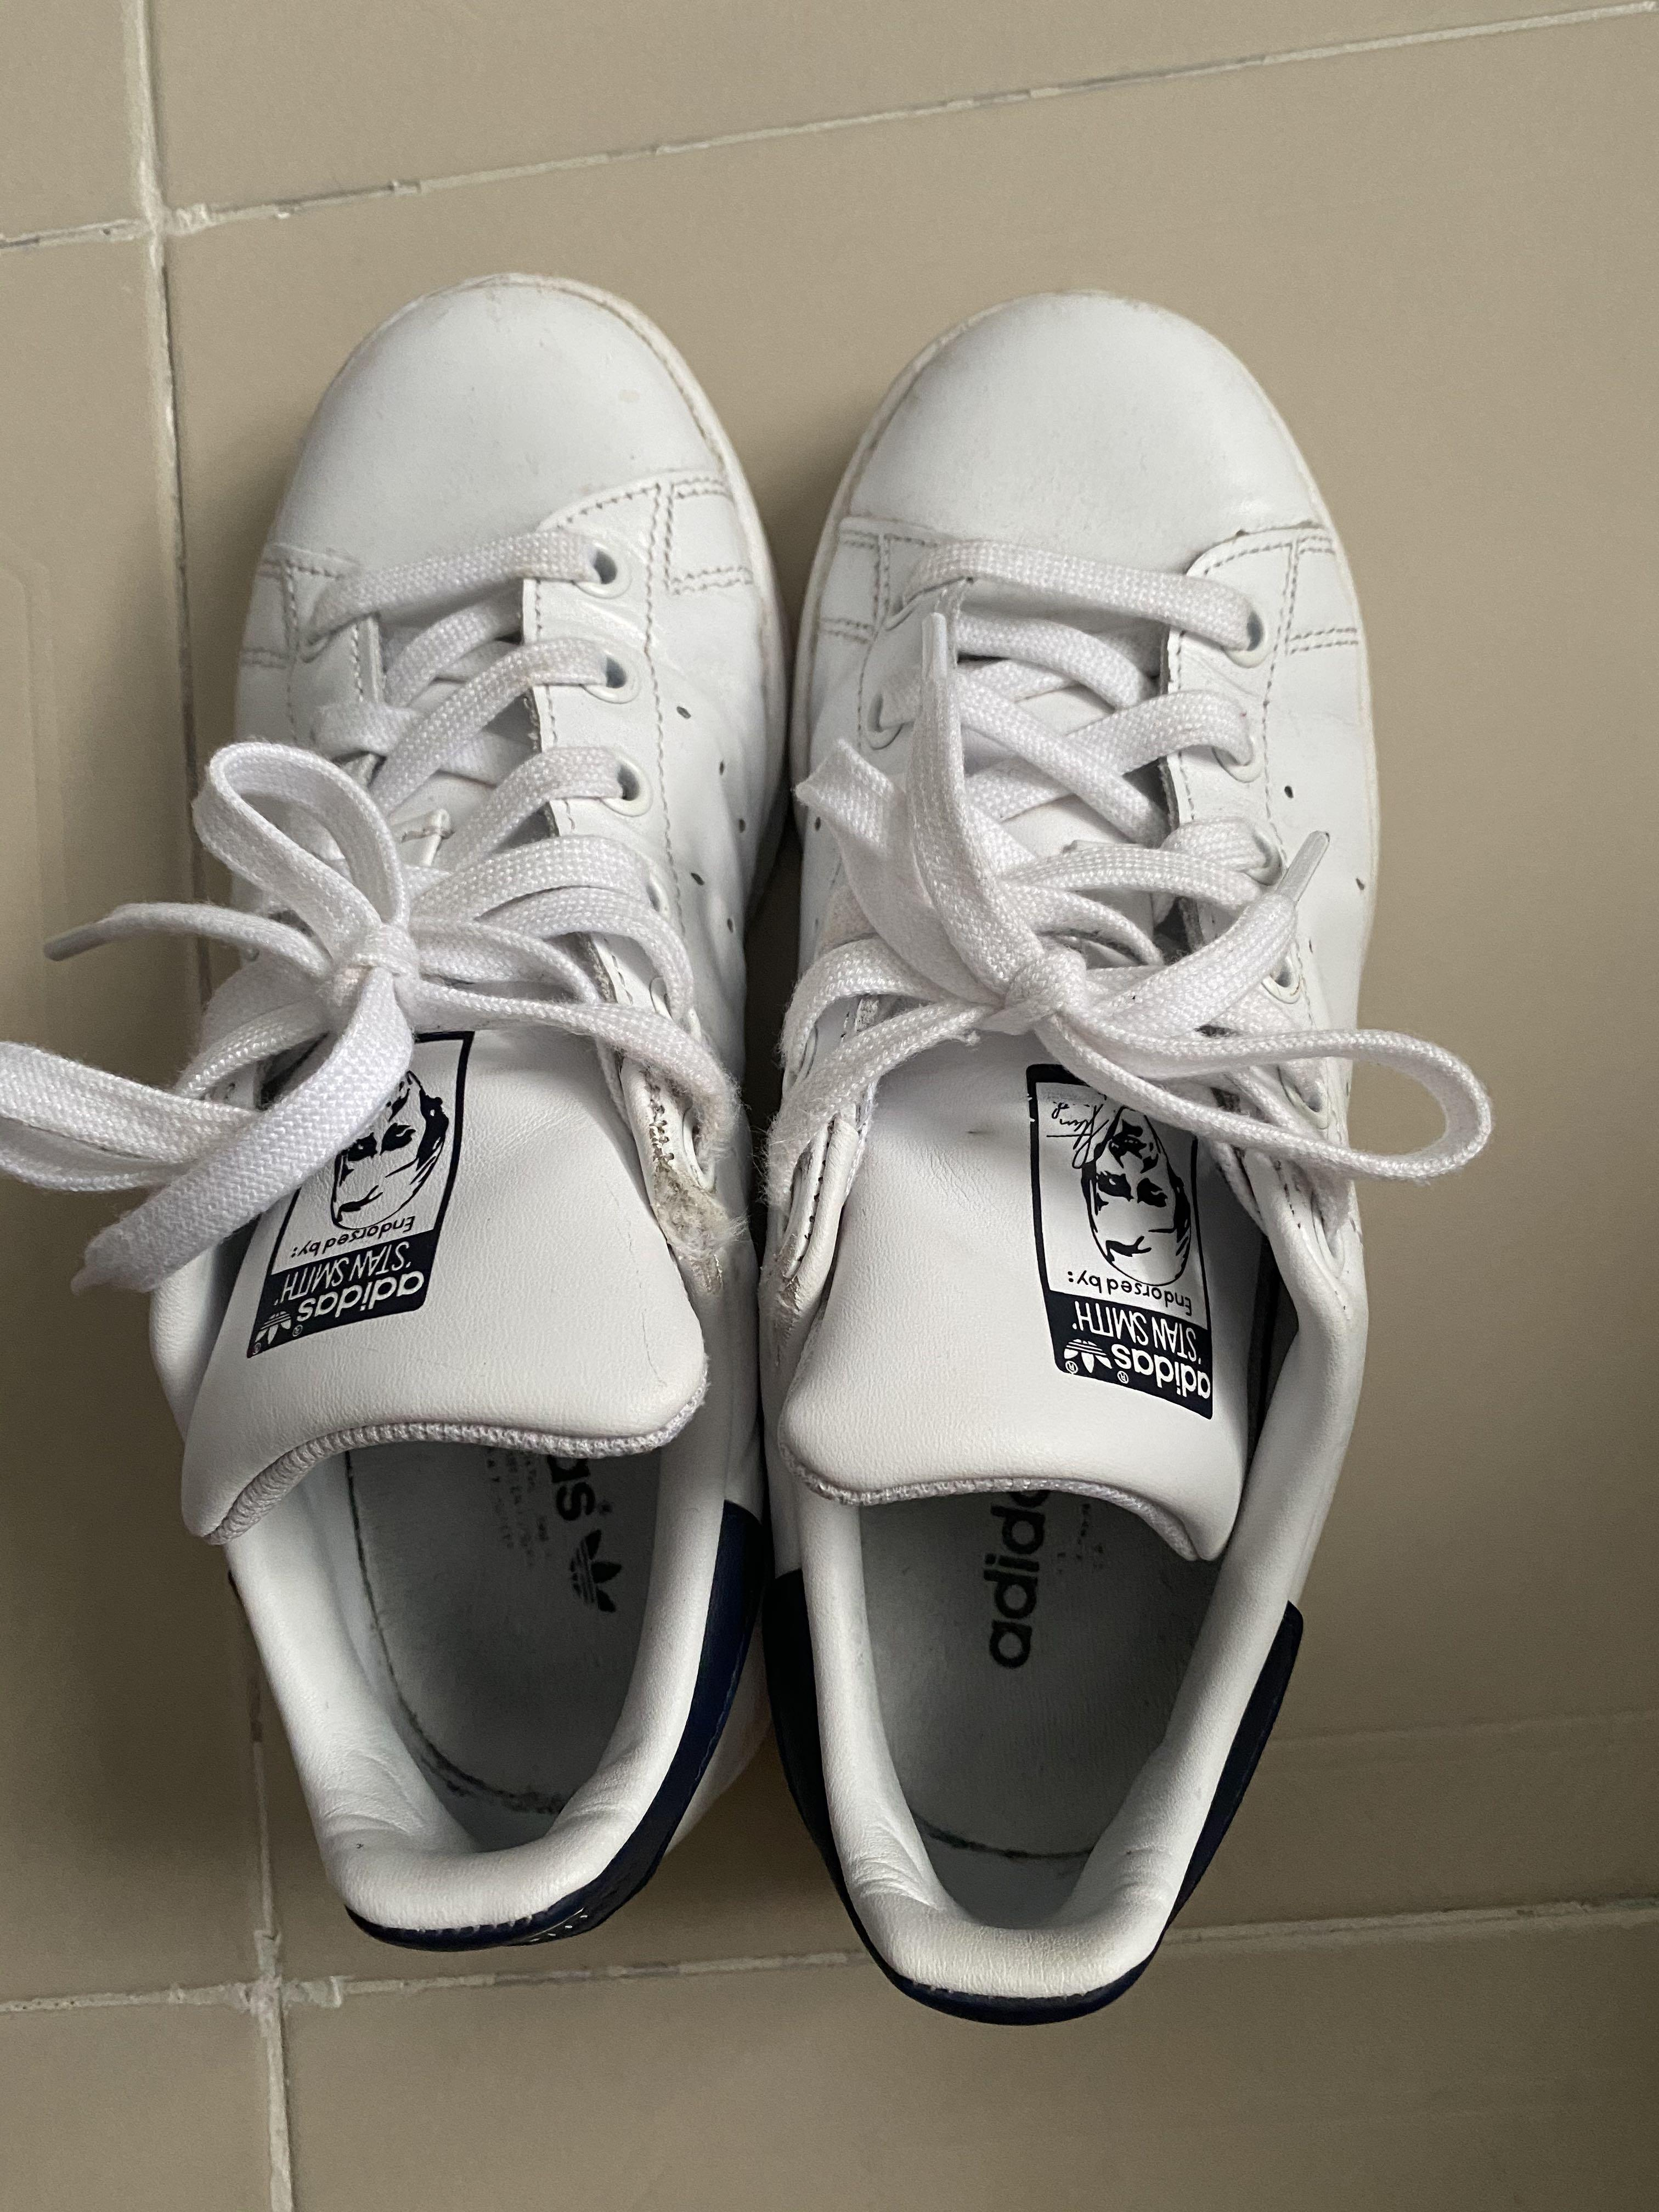 worn out stan smiths